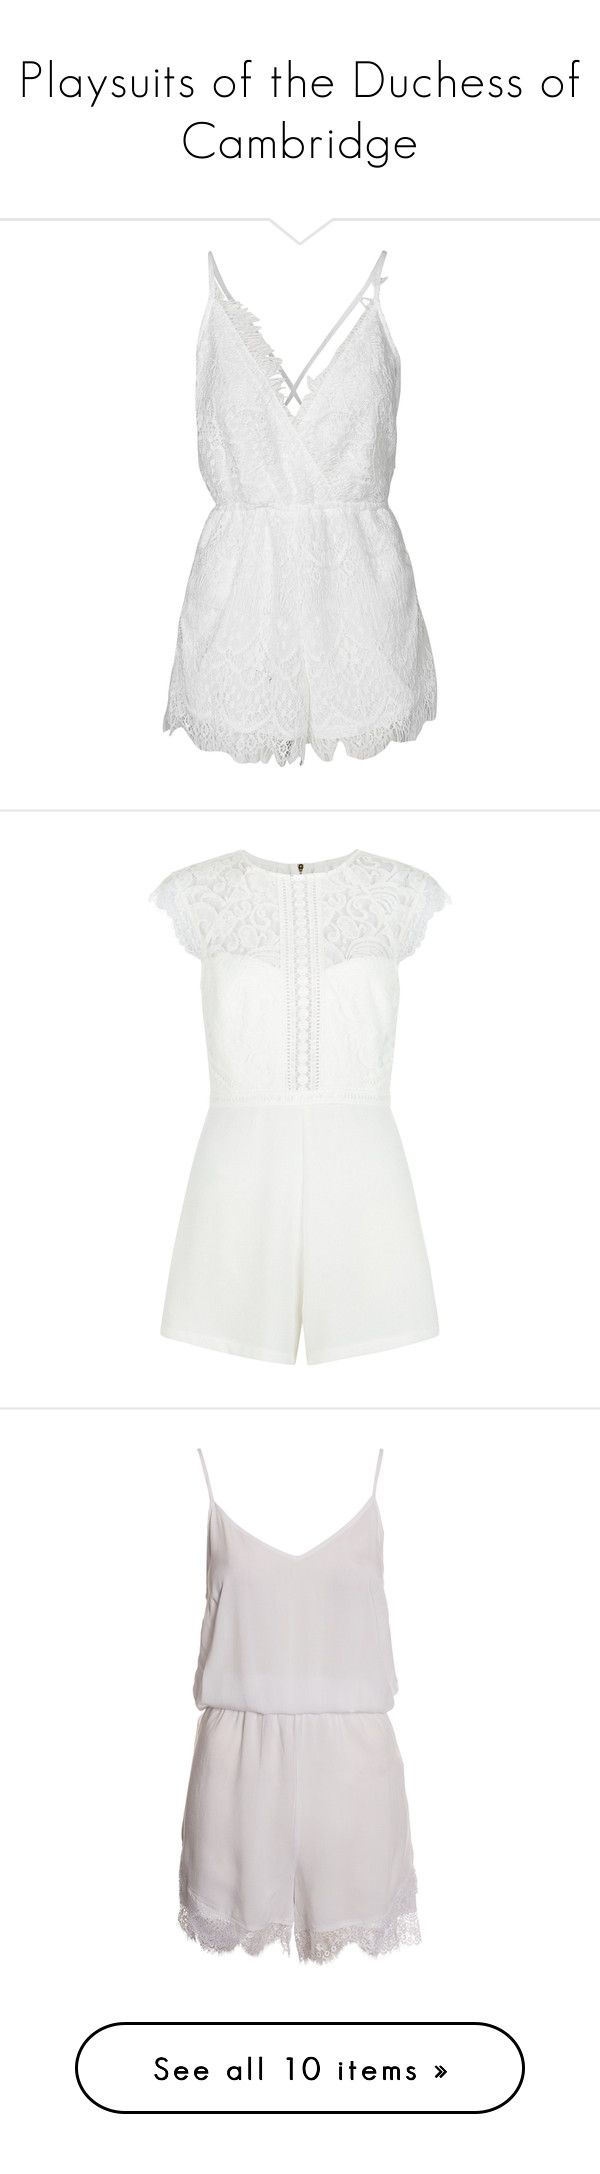 """""""Playsuits of the Duchess of Cambridge"""" by duchessamparo ❤ liked on Polyvore featuring jumpsuits, rompers, dresses, playsuits, white, womens-fashion, romper jumpsuit, jump suit, tall romper and wrap romper"""